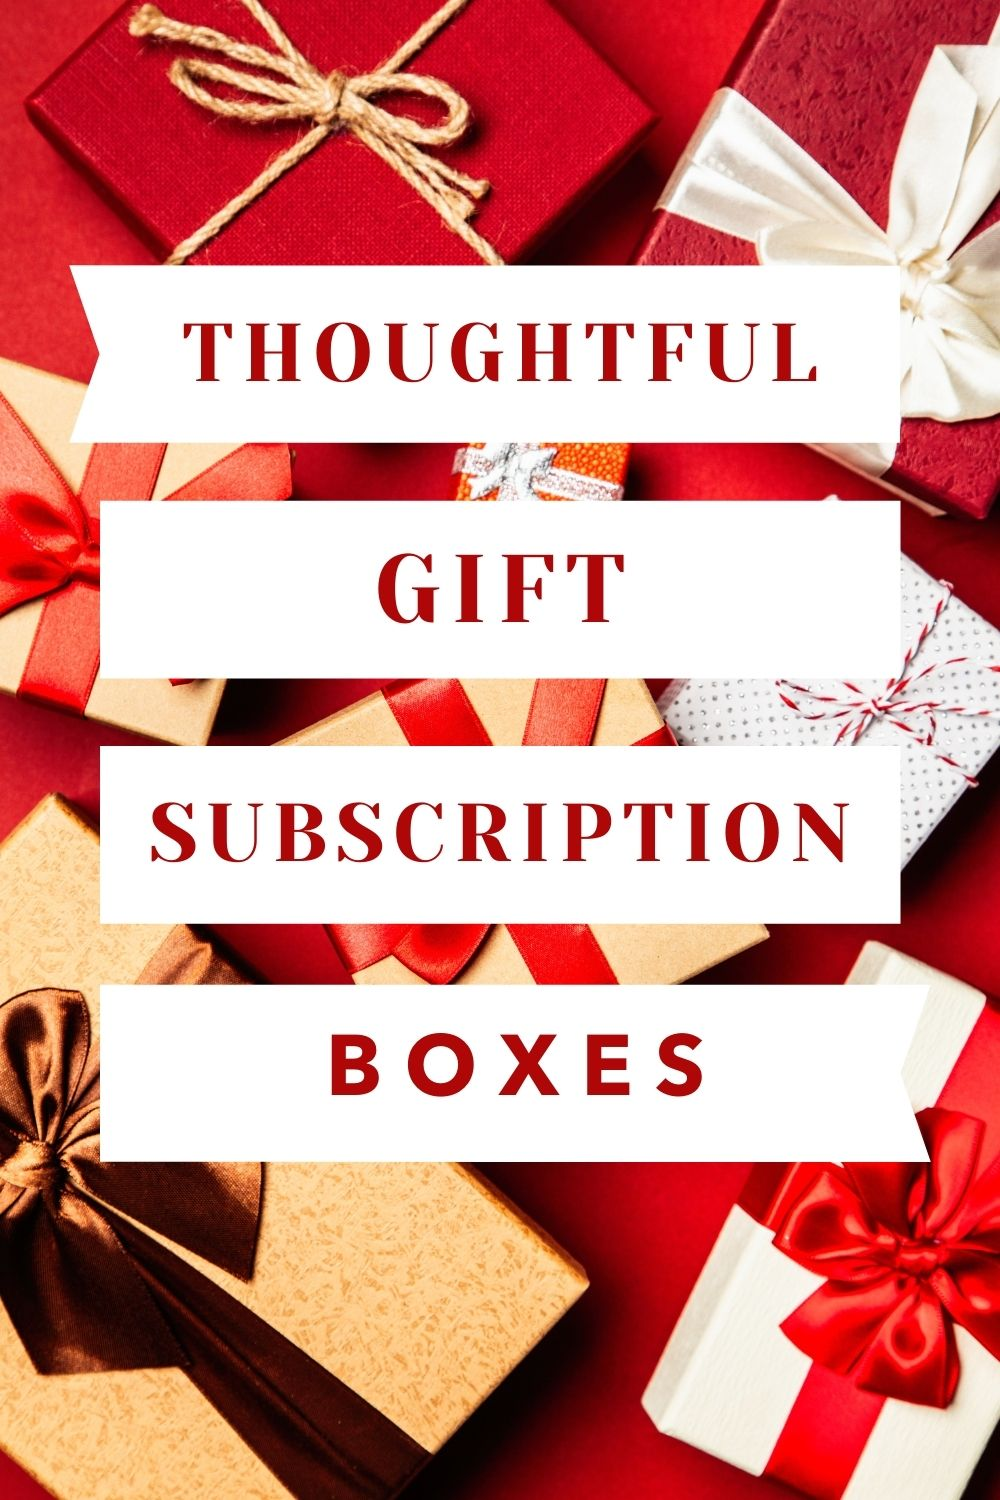 Best Subscriptions to give as gifts for Christmas